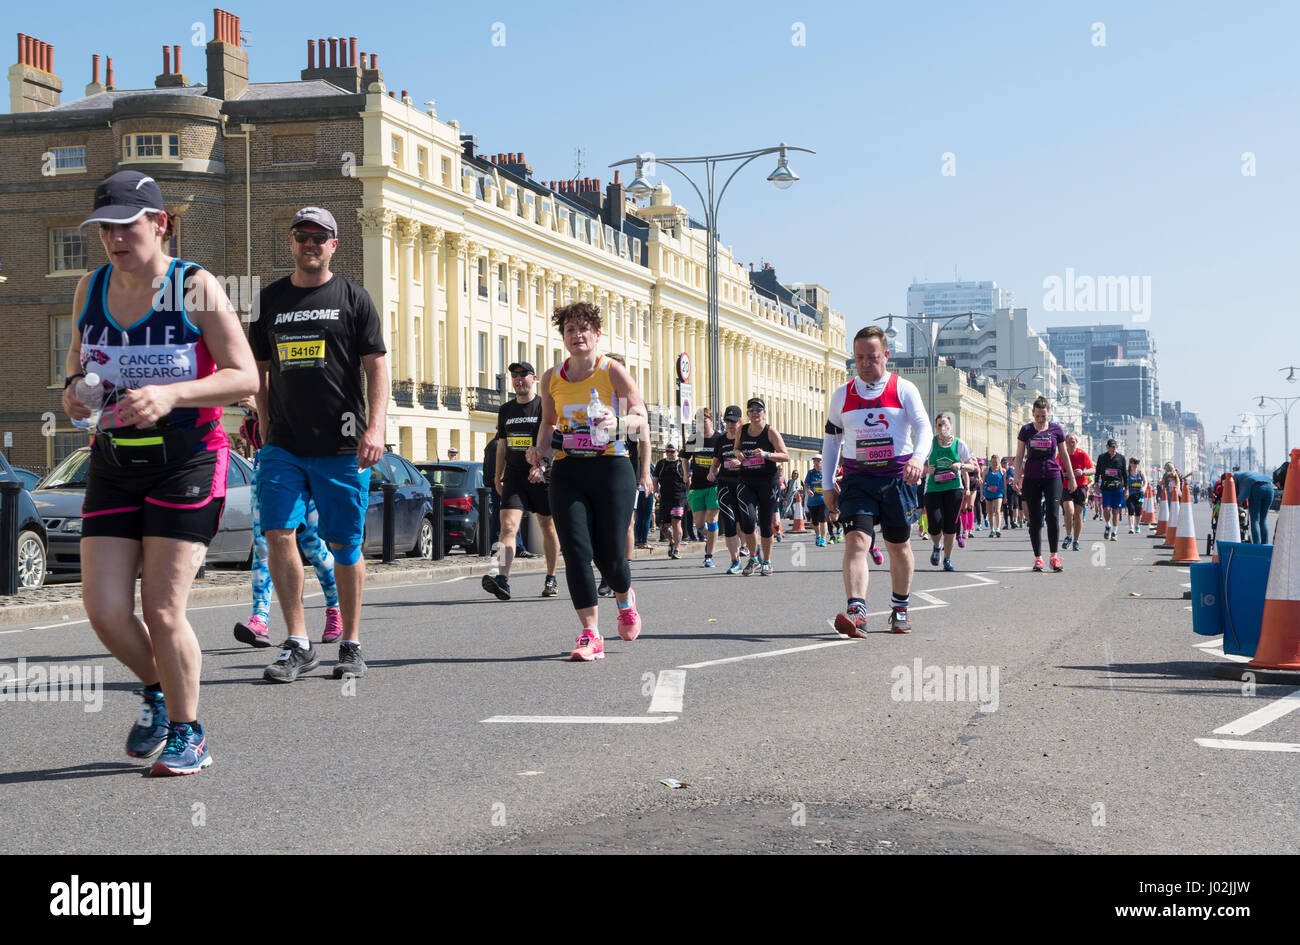 Brighton, UK. 9th Apr, 2017. Thousands of people braved the heat on the hottest day of the year so far to participate - Stock Image